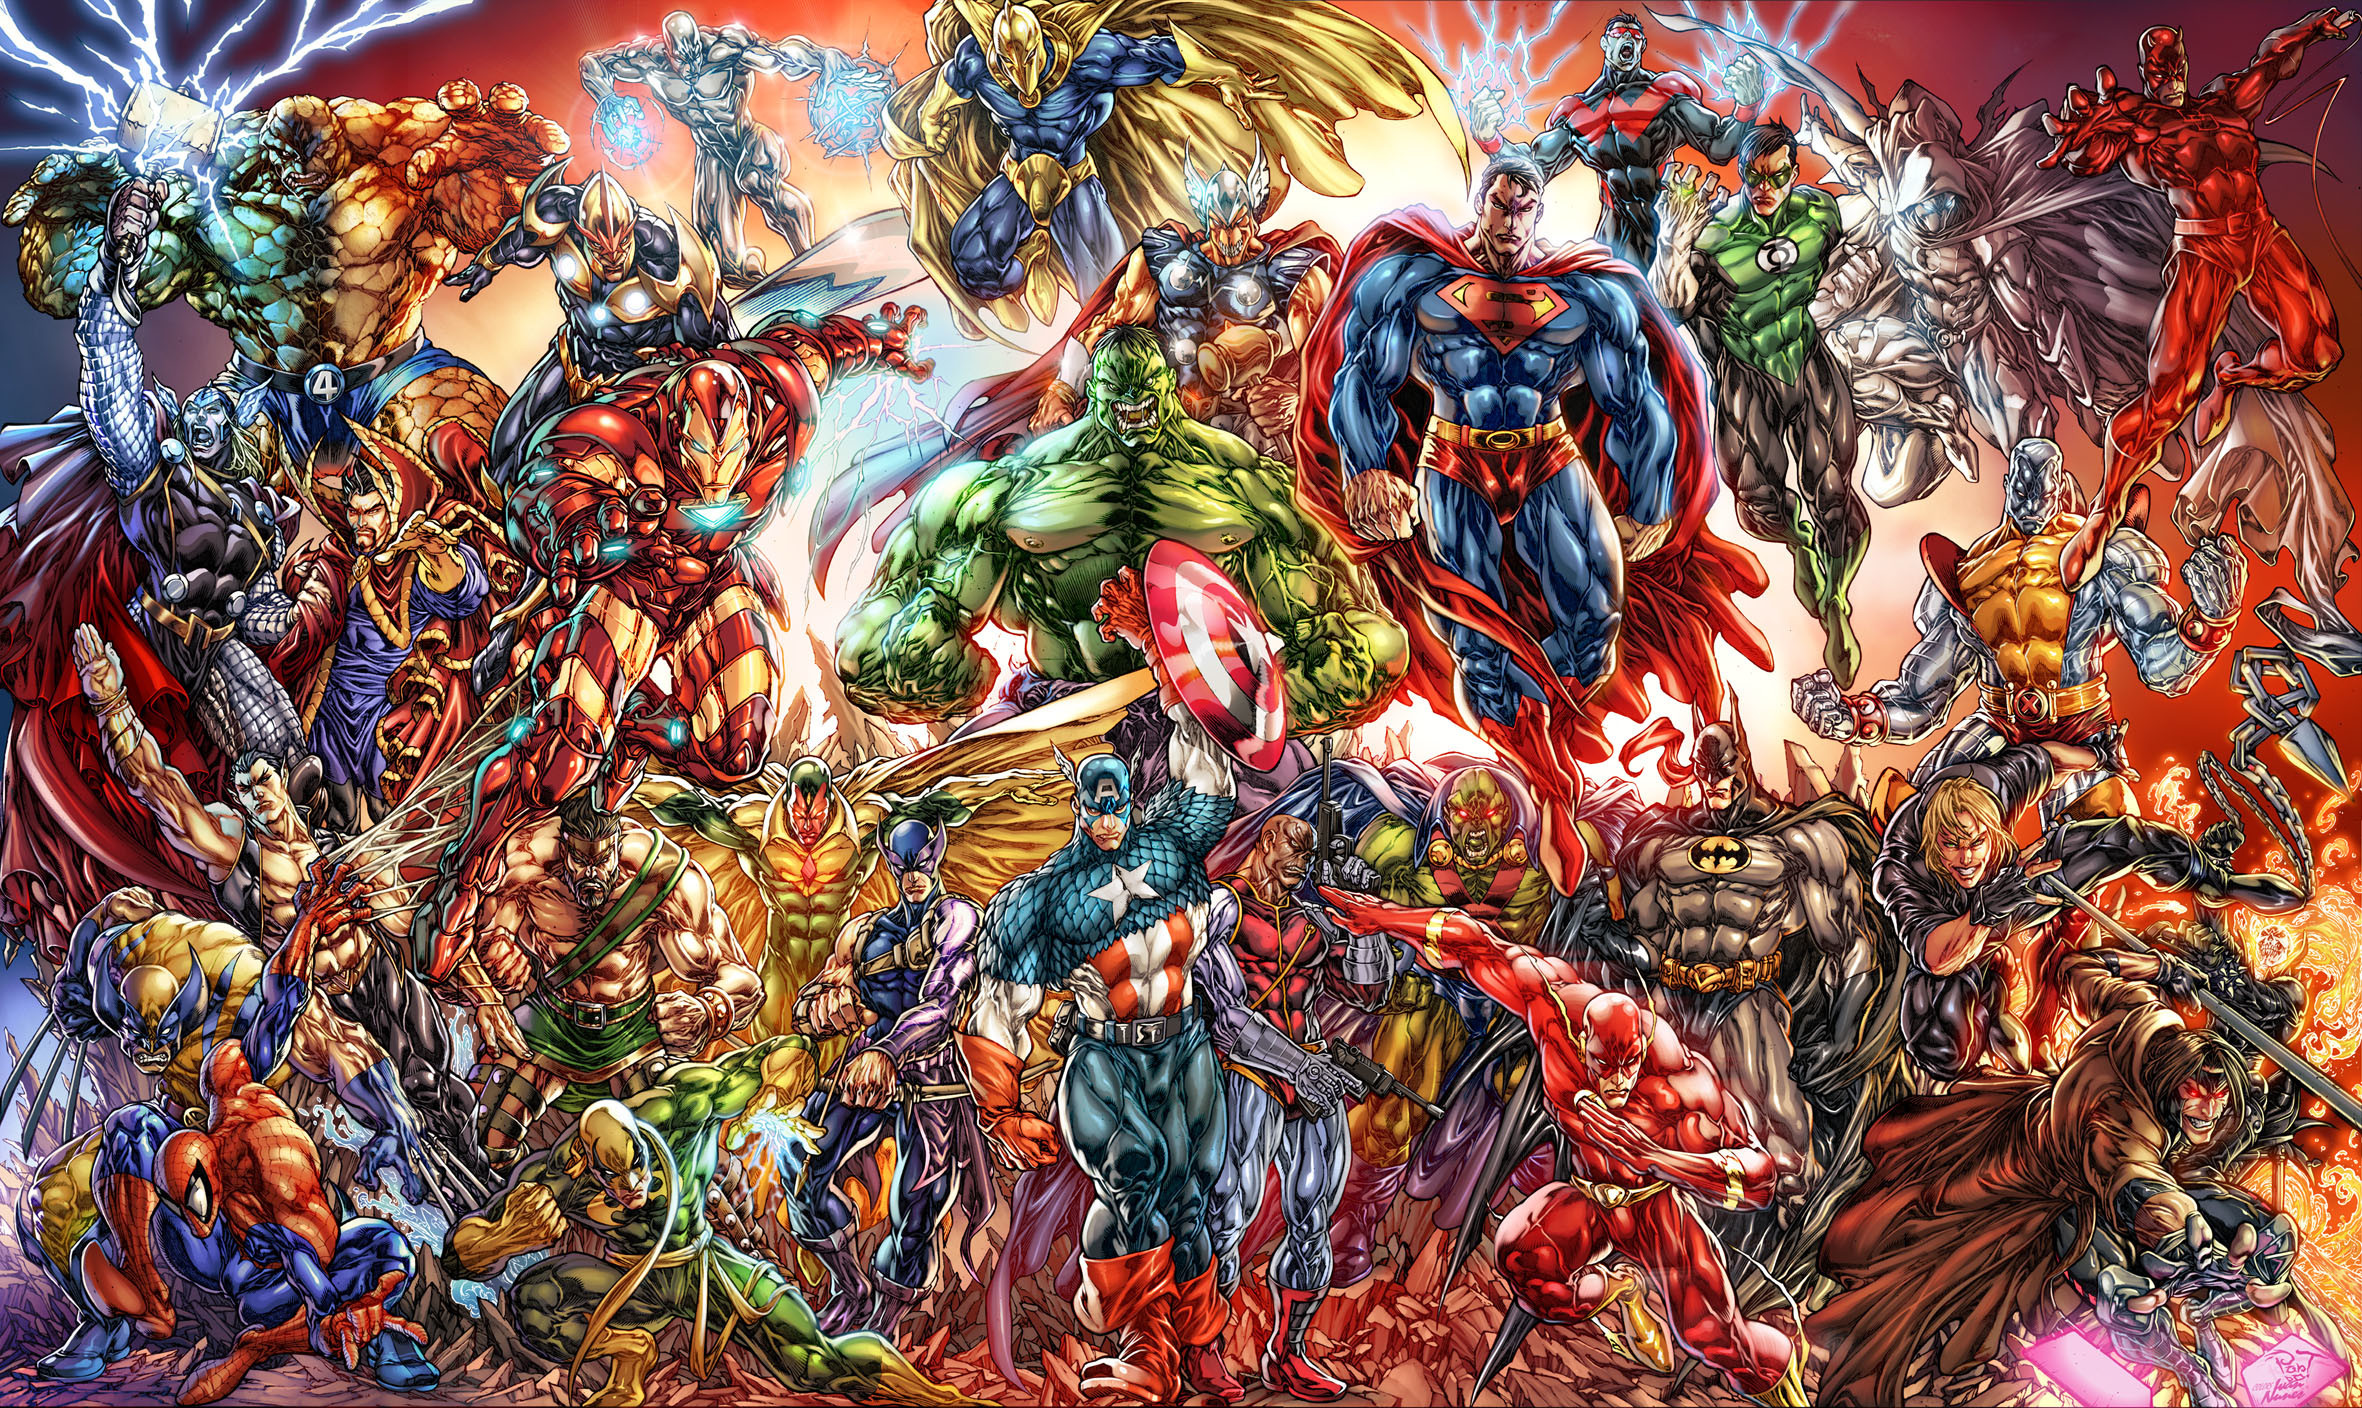 2362x1408 full-size-marvel-villains-wallpaper-2362×1408-phone-WTG30012275